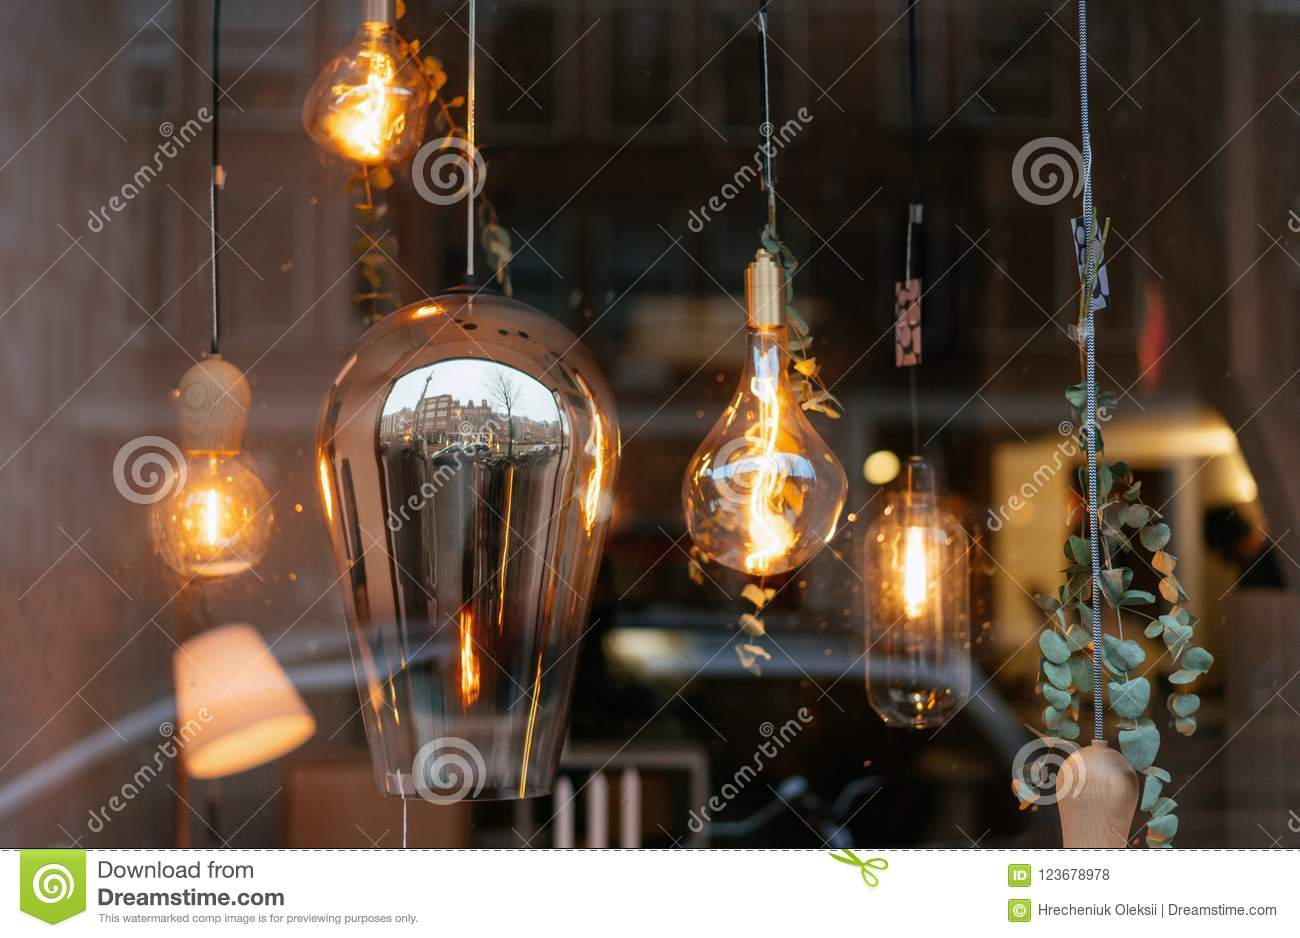 Glass Edison Lamp Incandescent Lamps In Room Behind The Glass Stock Photo